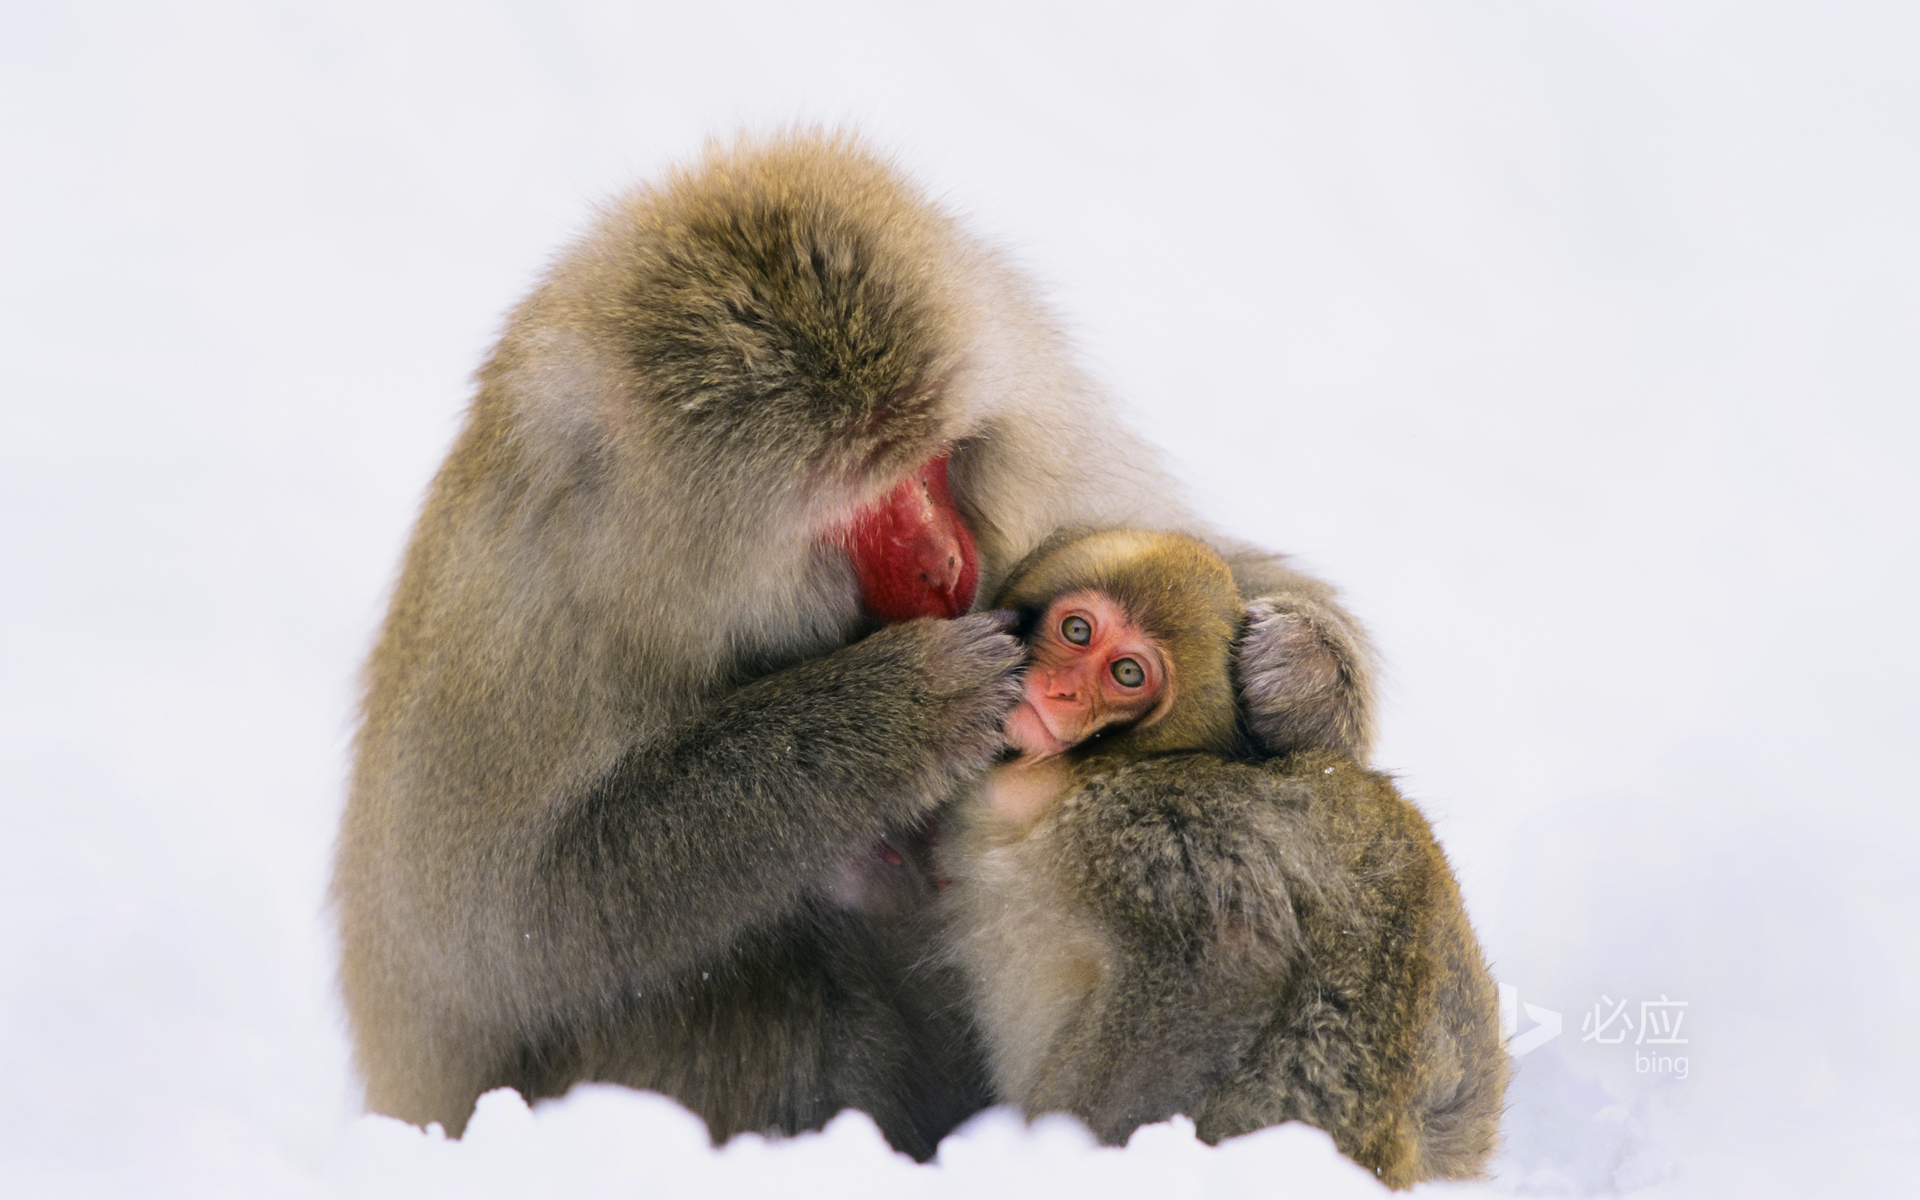 Japanese Alps, Japanese macaques in the snow